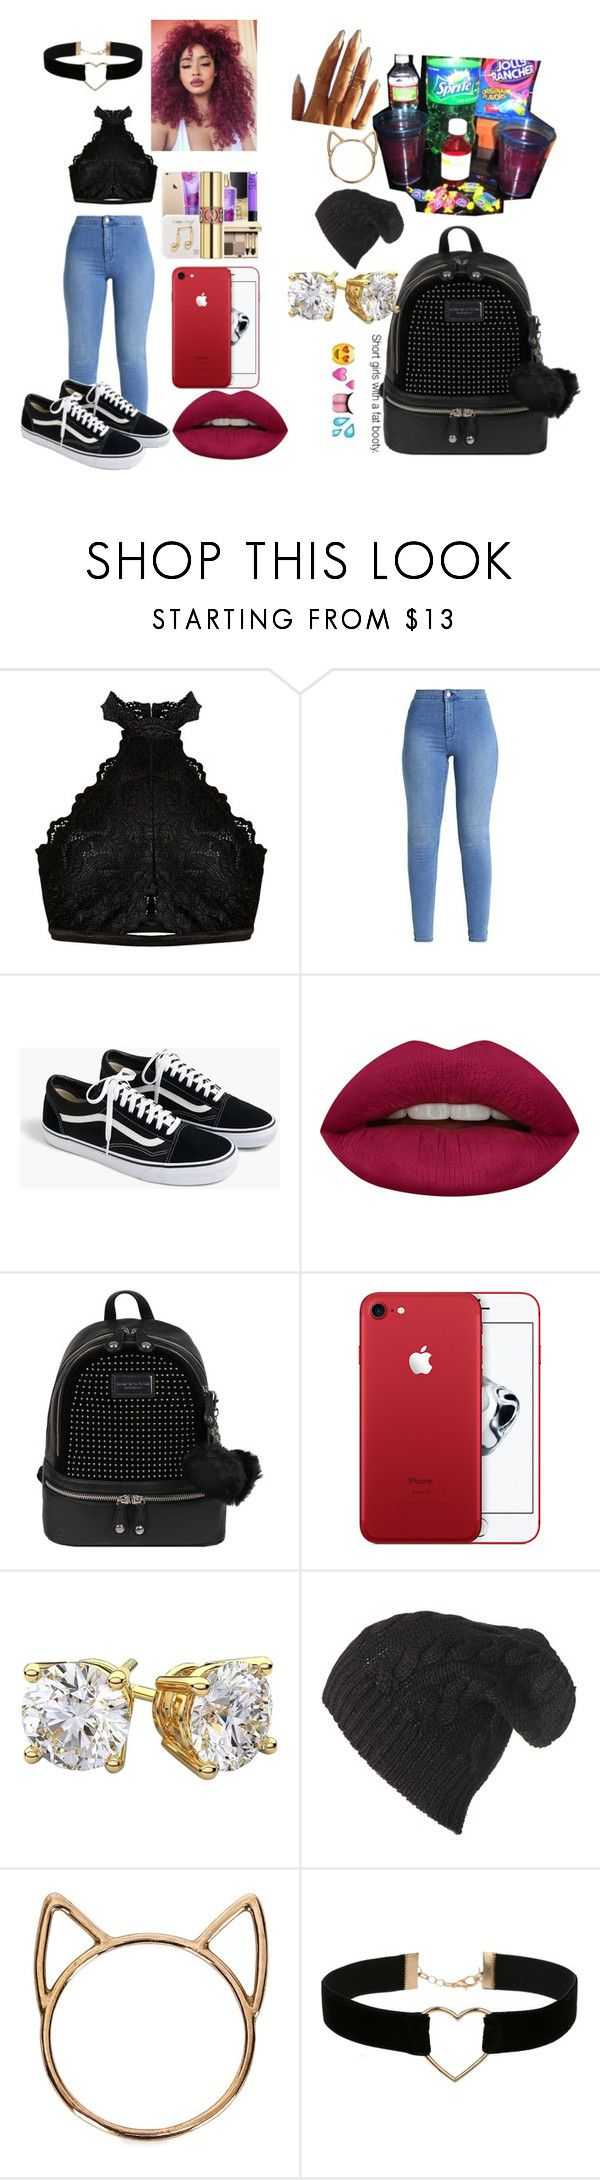 """""""Untitled #15"""" by crazy-goddess ❤ liked on Polyvore featuring J.Crew, Huda Beauty, Andrew Marc, Black, Catbird and Miss Selfridge"""